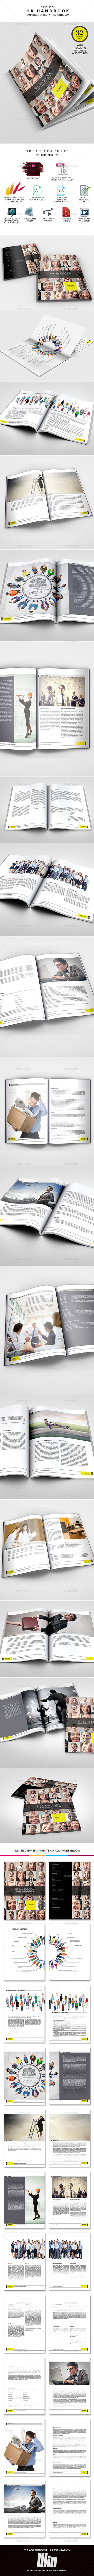 HR Handbook and Employee Manual Template — InDesign INDD #corporate #program • Available here → https://graphicriver.net/item/hr-handbook-and-employee-manual-template/9834494?ref=pxcr